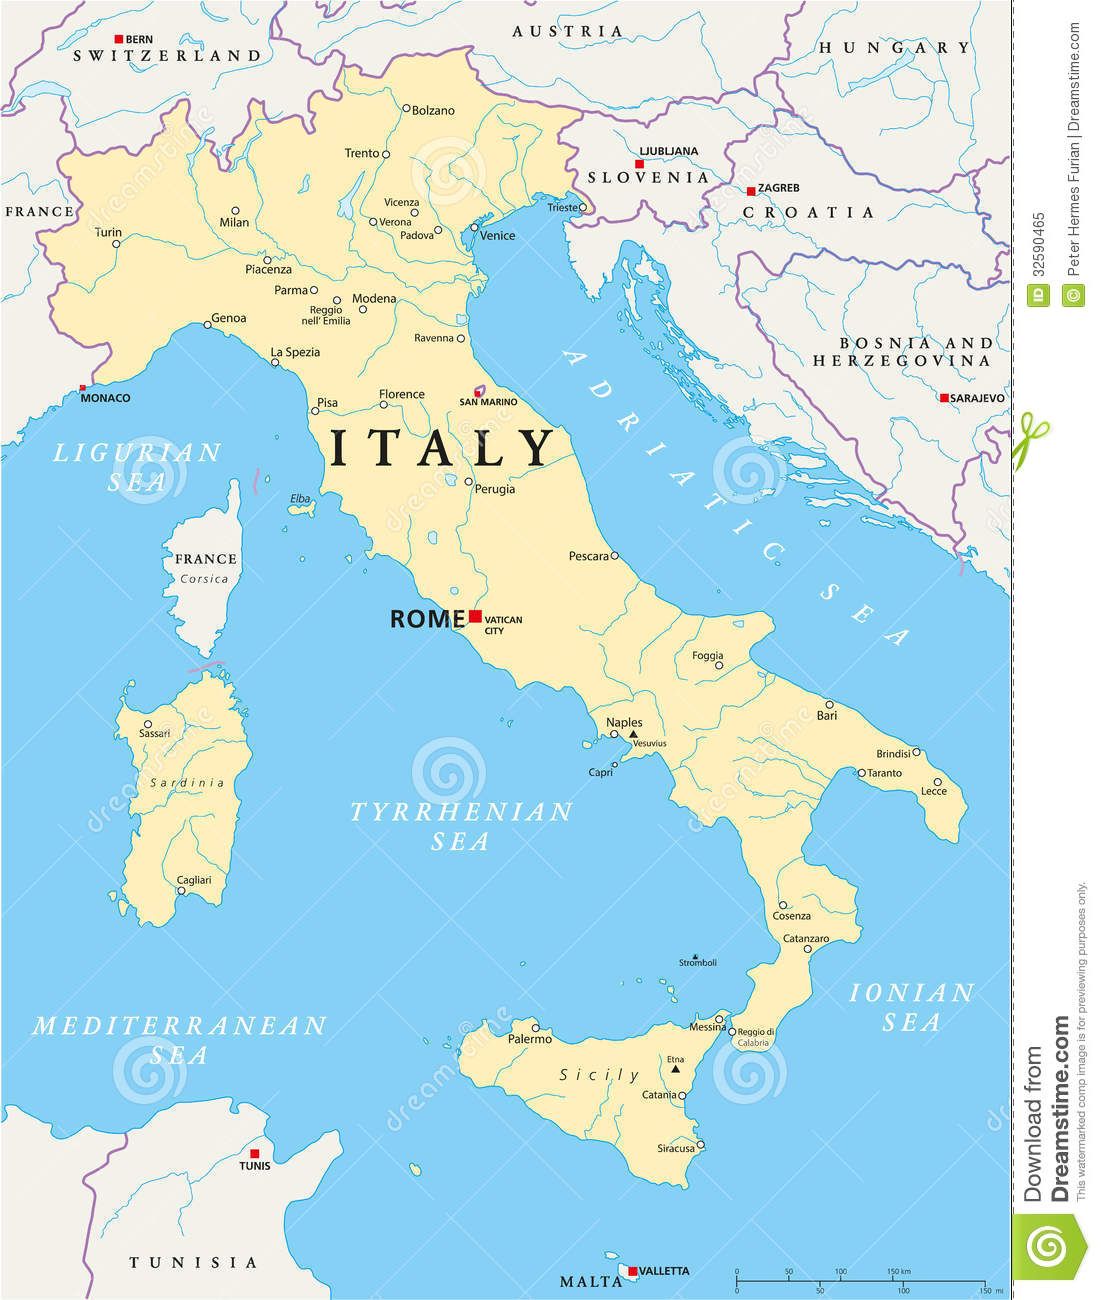 Capital Of Italy Map.Italy Map Stock Vector Illustration Of Land Cagliari 32590465